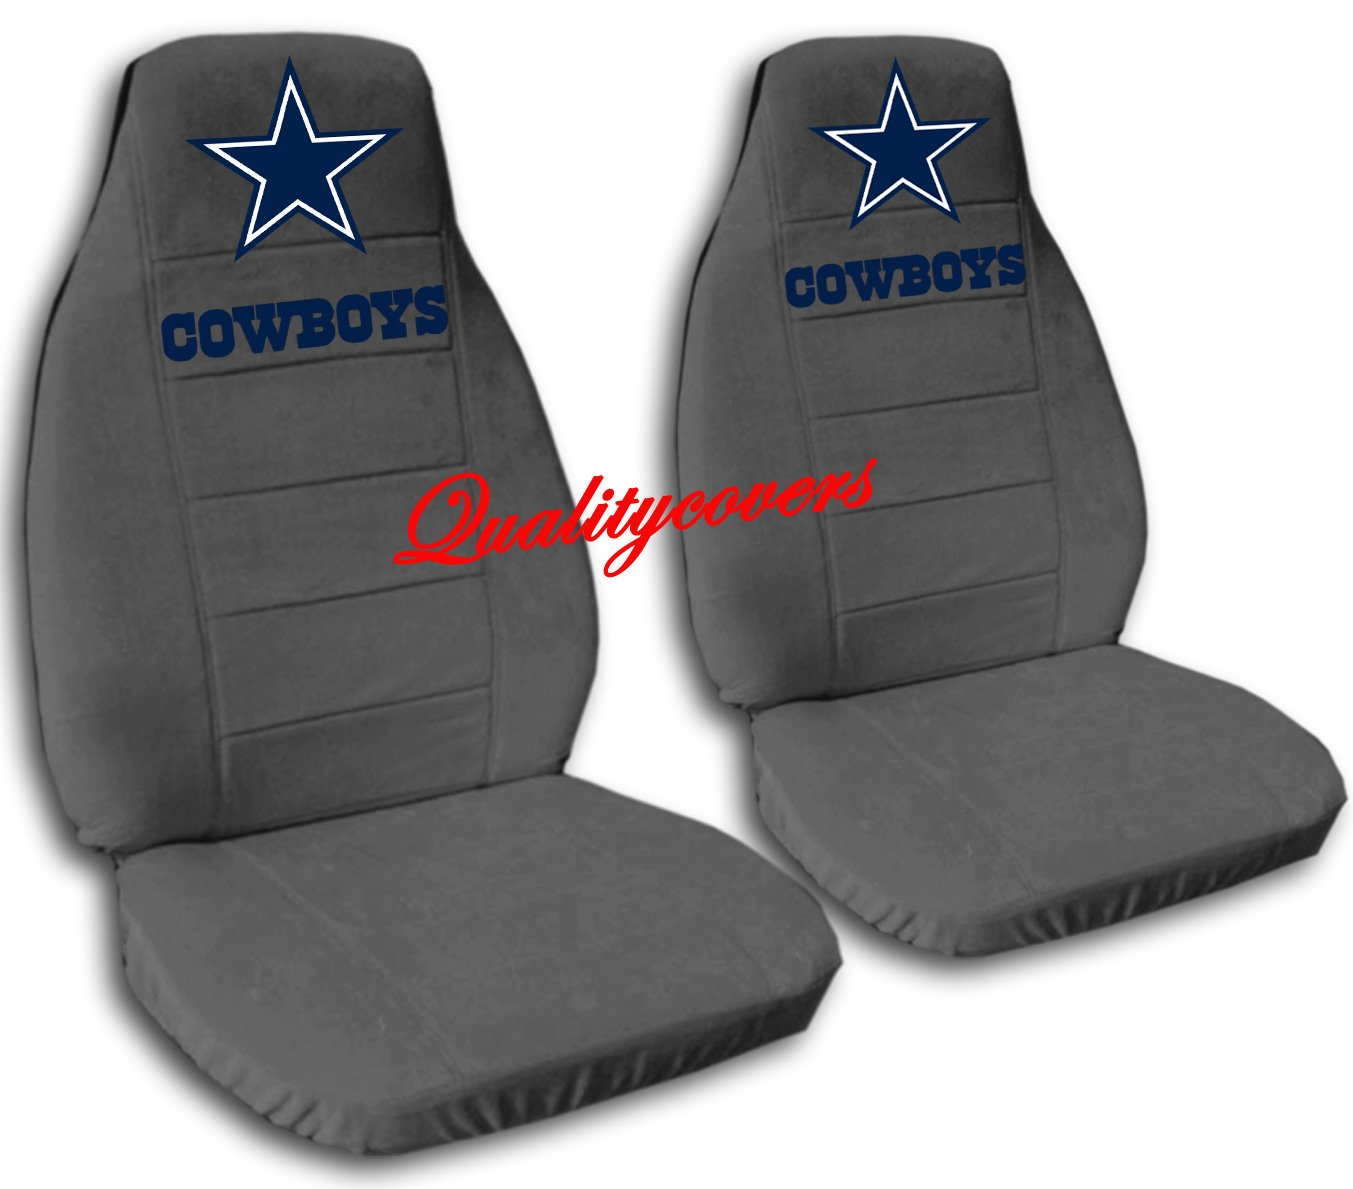 2 Charcoal Dallas seat covers for a 2007 to 2012 Chevrolet Silverado. Side airbag friendly.